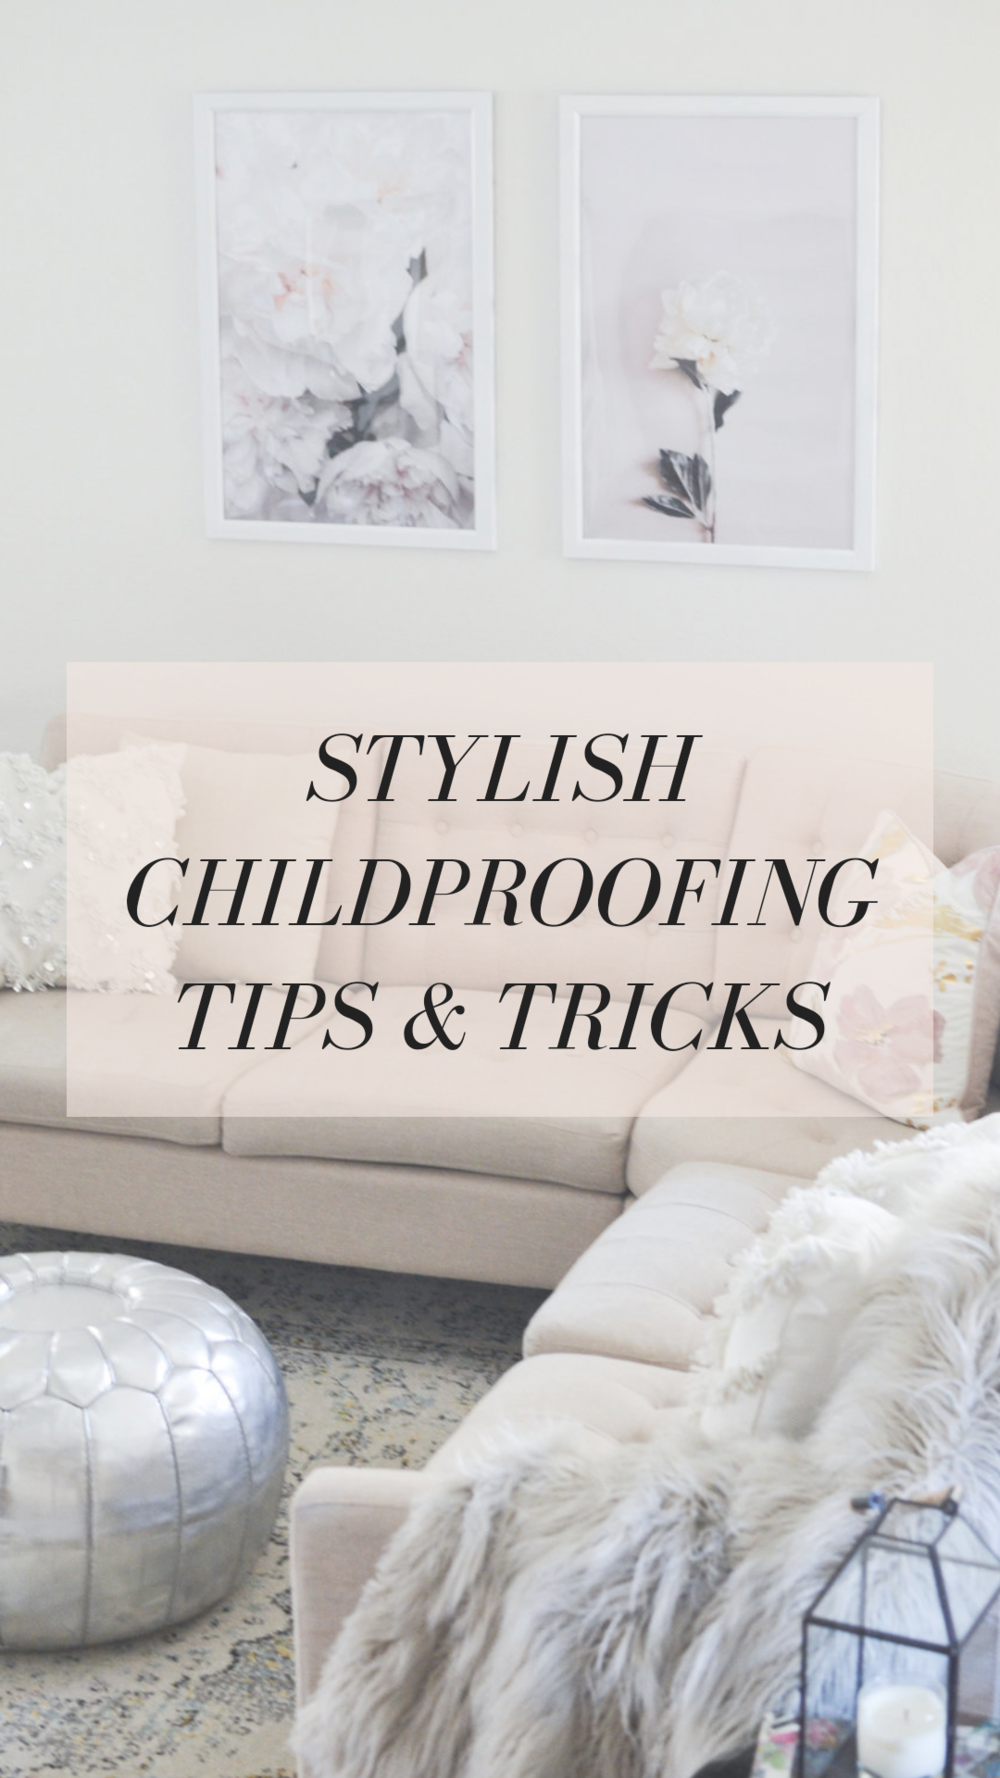 Stylish Childproofing | living room with text overlay